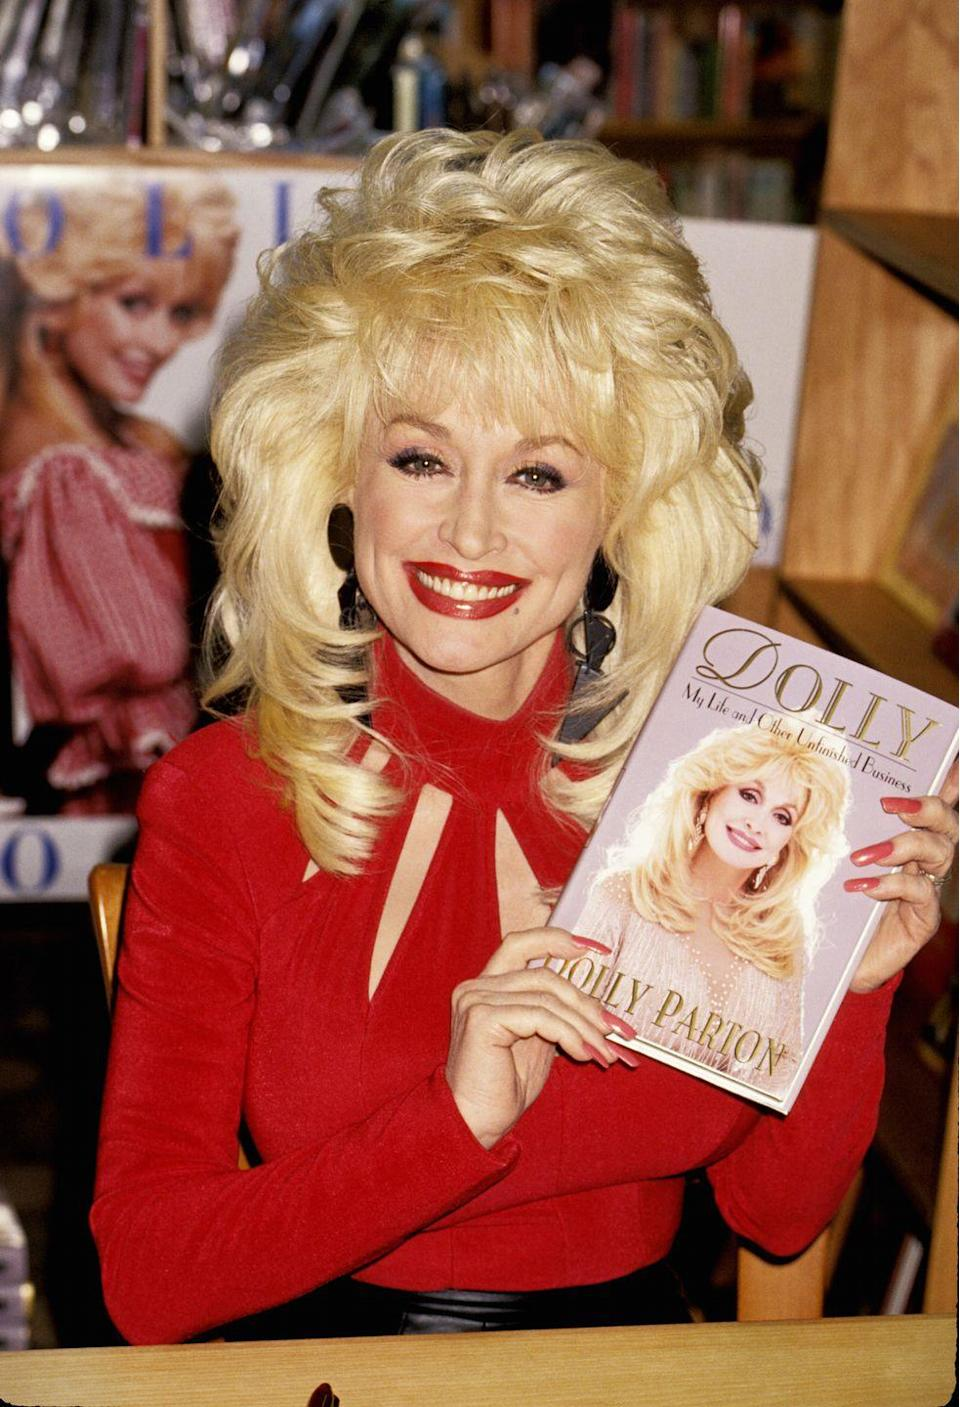 "<p>Dolly signings her memoir <em><a href=""https://www.amazon.com/Dolly-Life-Other-Unfinished-Business/dp/0061092363?tag=syn-yahoo-20&ascsubtag=%5Bartid%7C10050.g.35033758%5Bsrc%7Cyahoo-us"" rel=""nofollow noopener"" target=""_blank"" data-ylk=""slk:Dolly: My Life and Other Unfinished Business"" class=""link rapid-noclick-resp"">Dolly: My Life and Other Unfinished Business</a>.</em></p>"